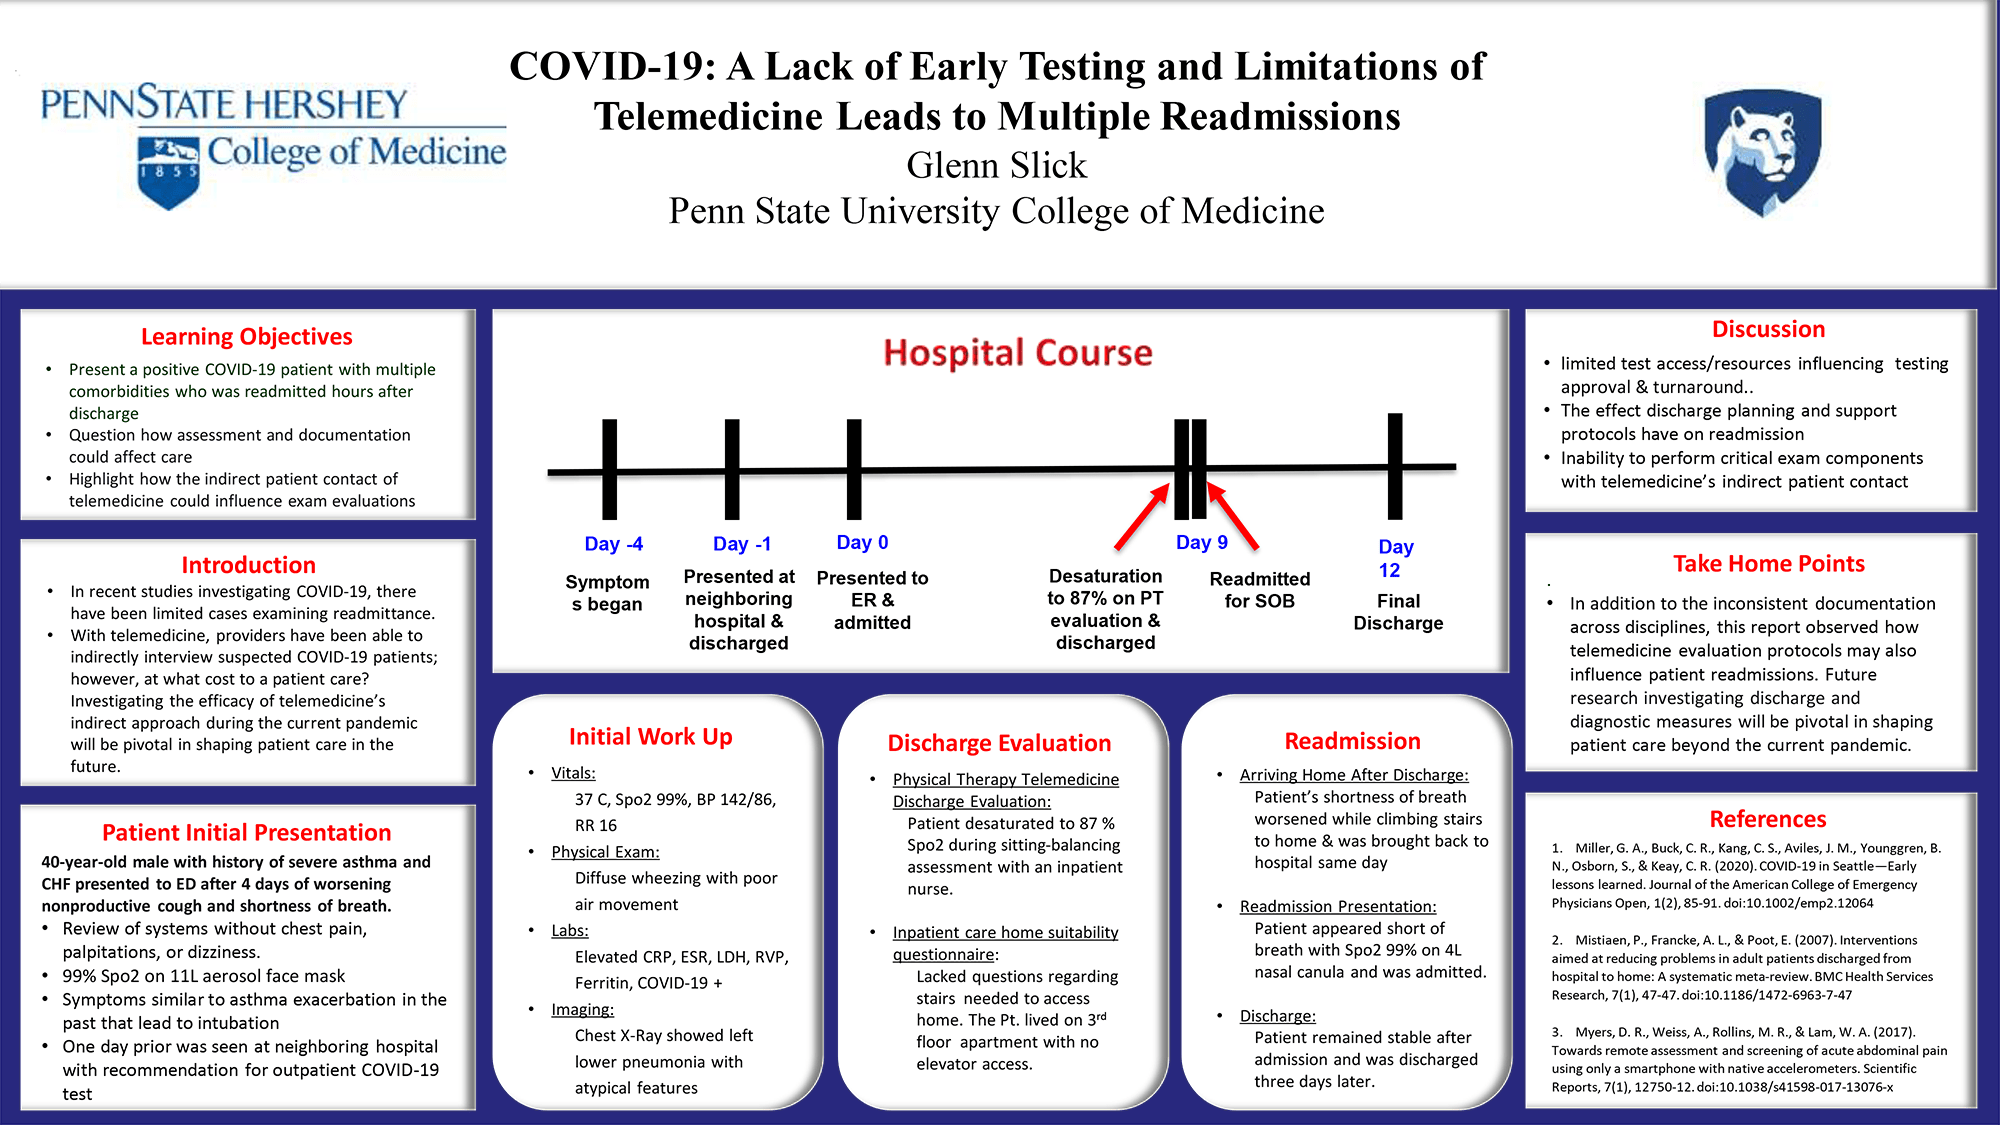 Glenn Slick - PA-PAE-10-Absence-of- Early-Testing-and-Limitations-of-Telemedicine-Leads-to-Multiple-Readmissions-in-a-COVID-19-Positive-Patient